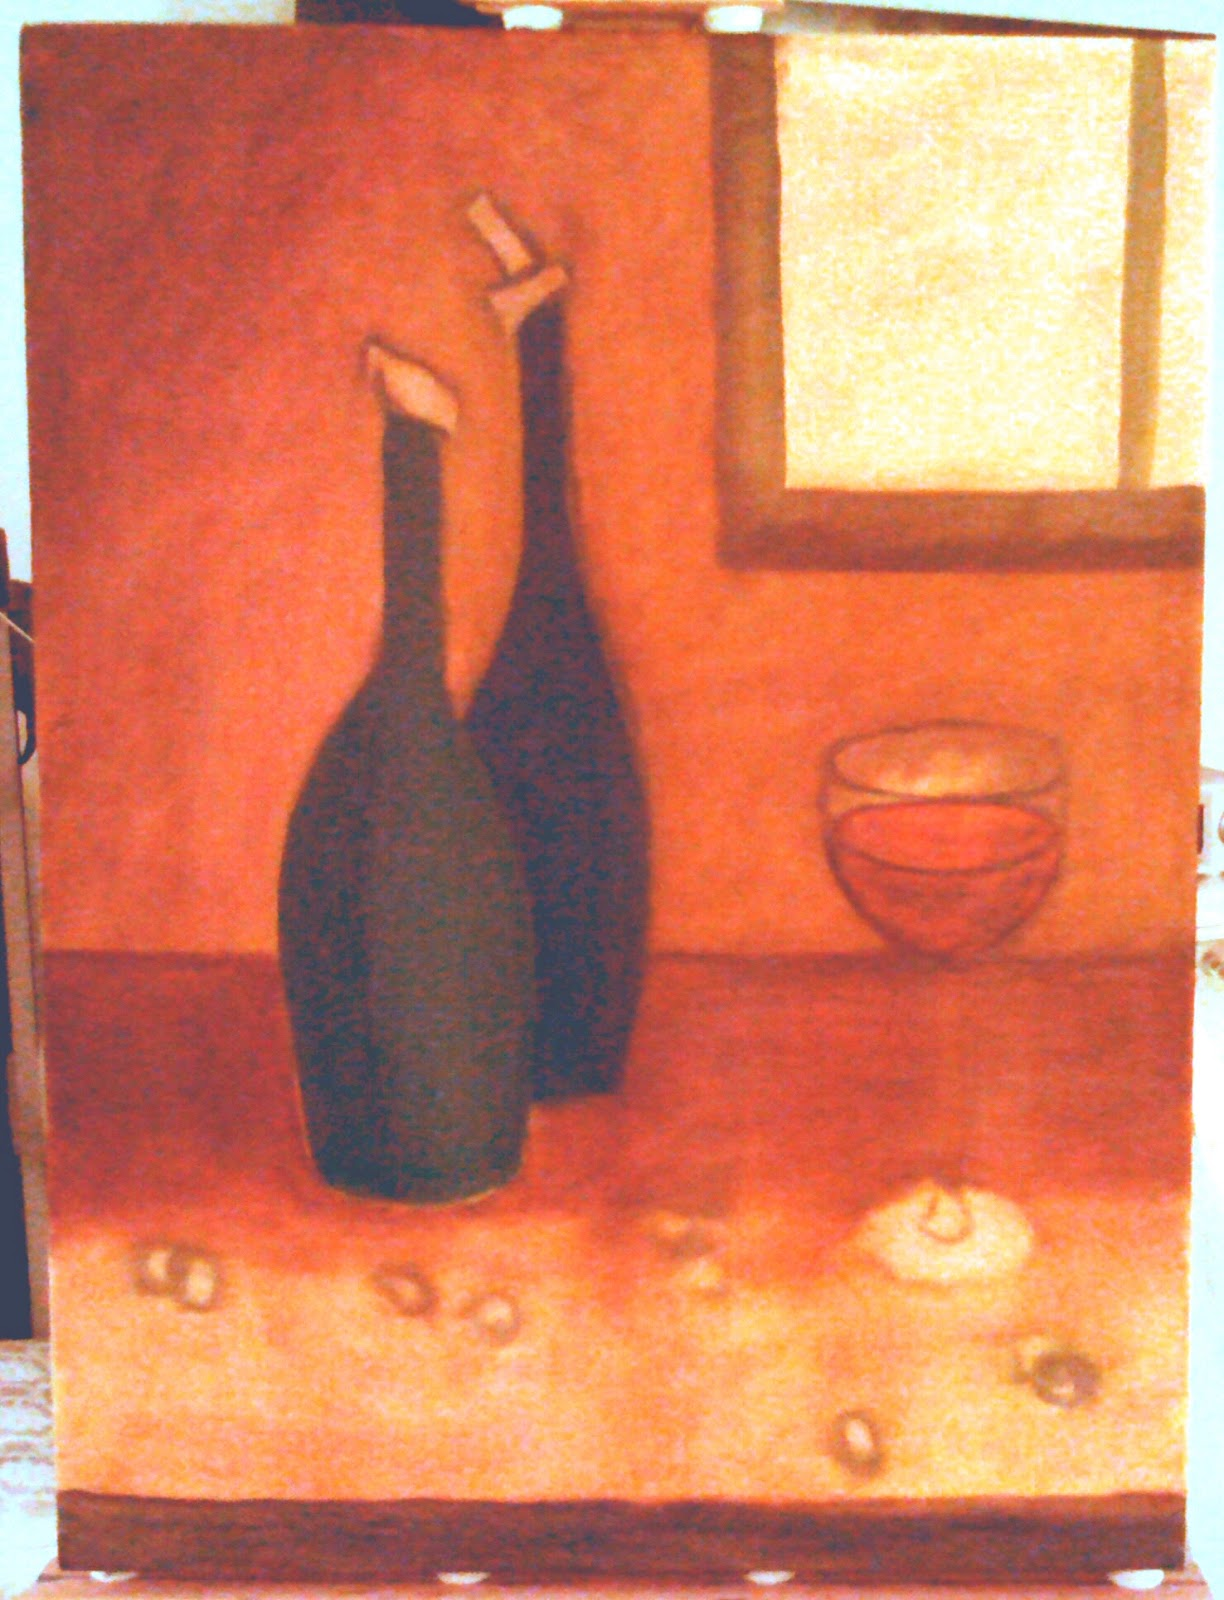 150225 - Abstract Bottles 002b 24x18 oil on stretched canvas - Dave Casey - TheDailyPainter.jpg